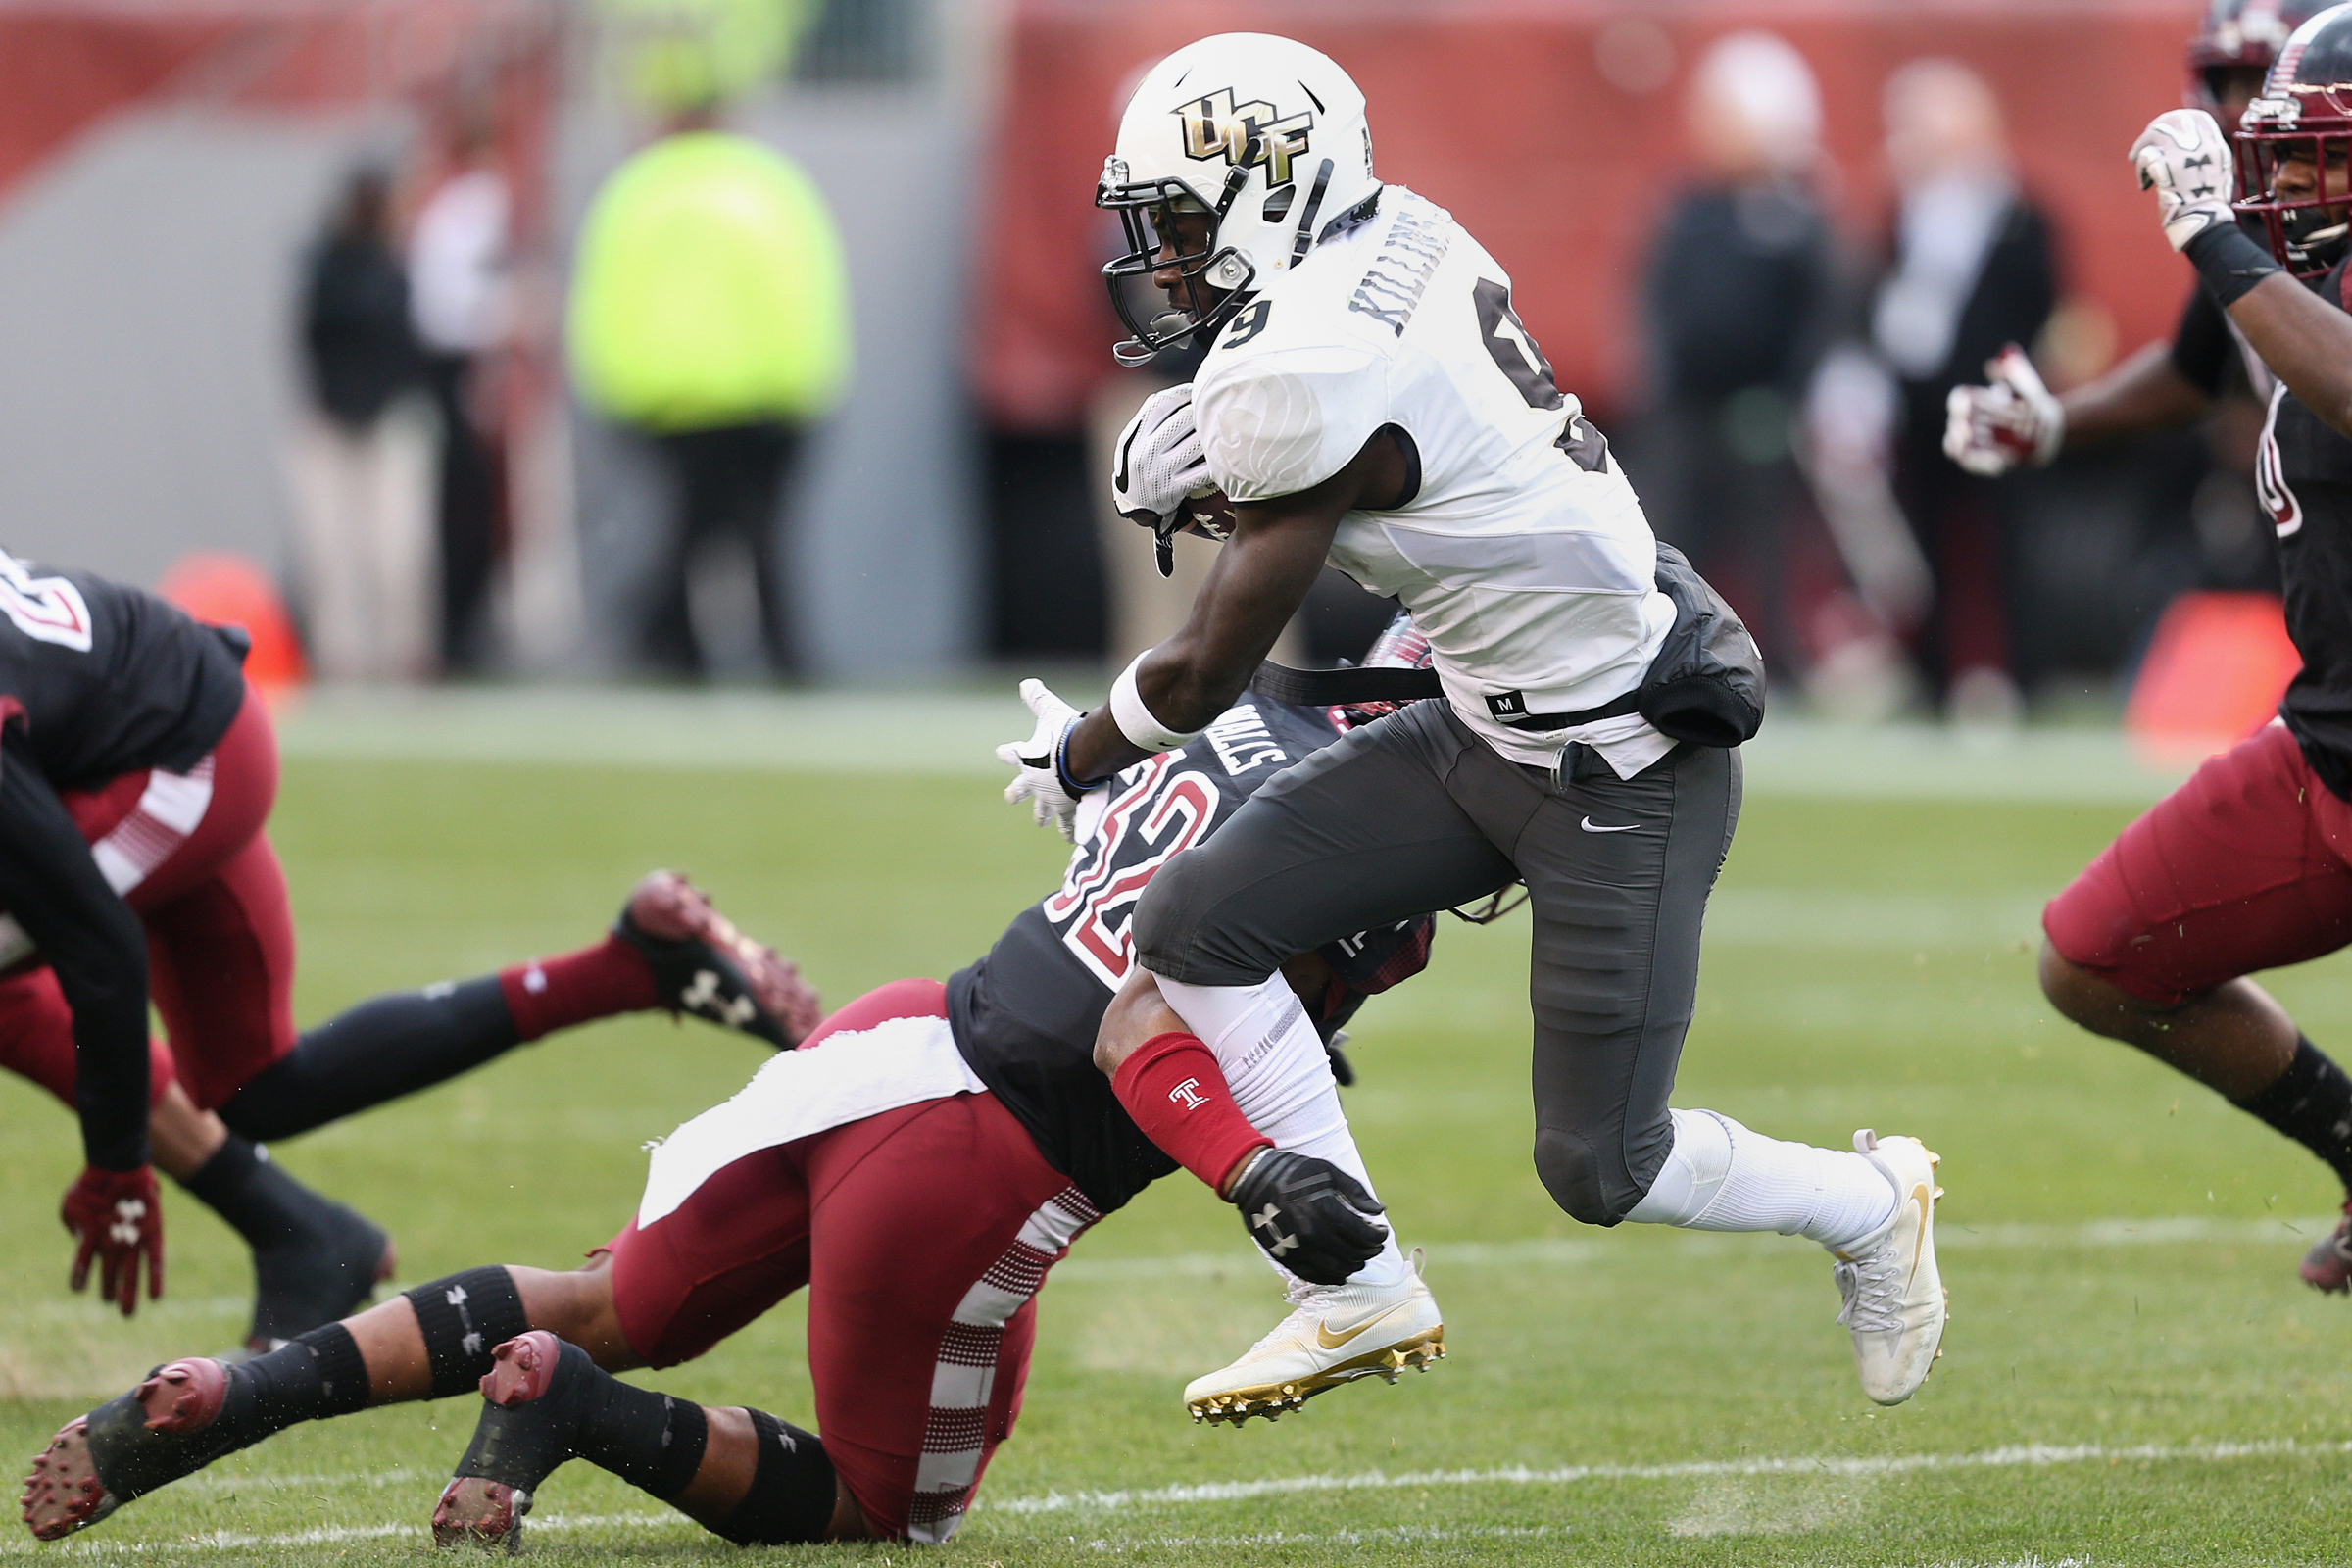 Temple defensive back Benny Walls (32) attempts to tackle UCF running back Adrian Killins Jr. (9) during a game at Lincoln Financial Field on Saturday, Nov 18, 2017. TIM TAI / Staff Photographer